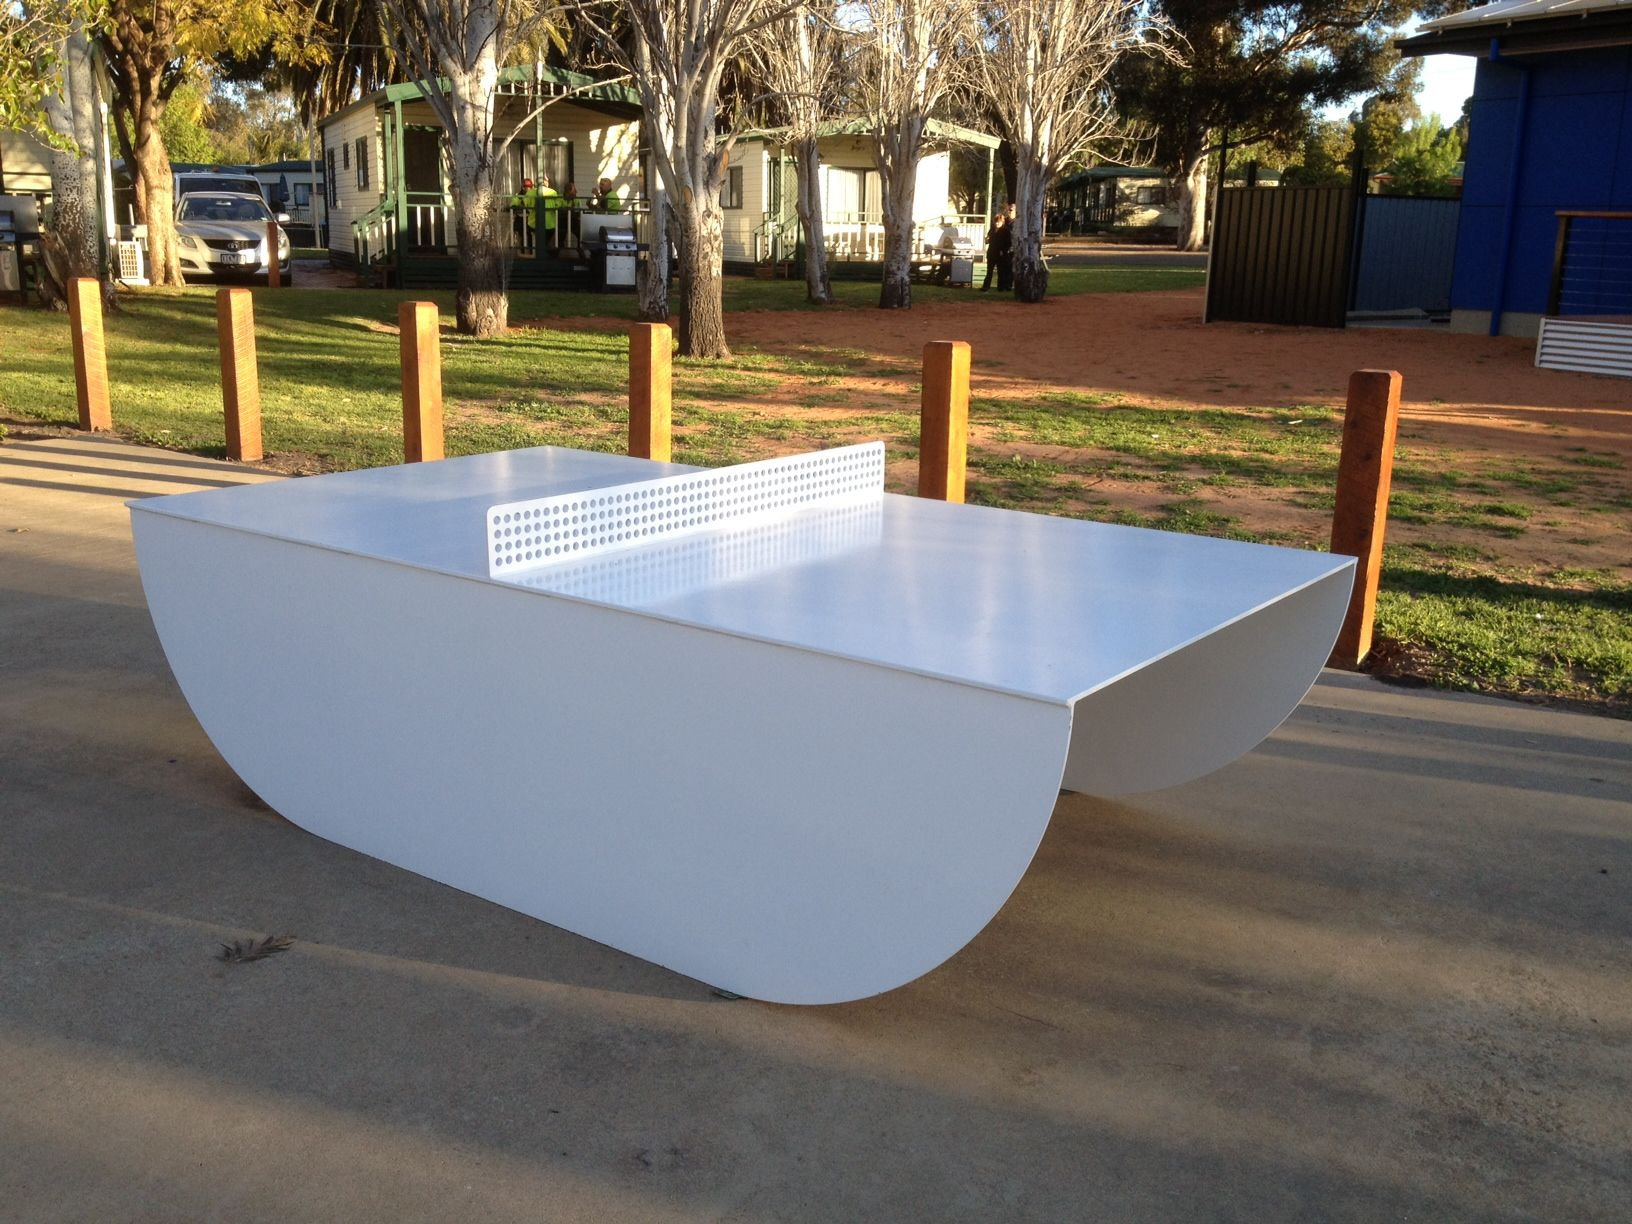 Unique Ping Pong Tables Outdoor Ping Pong Table Ping Pong Table Ping Pong